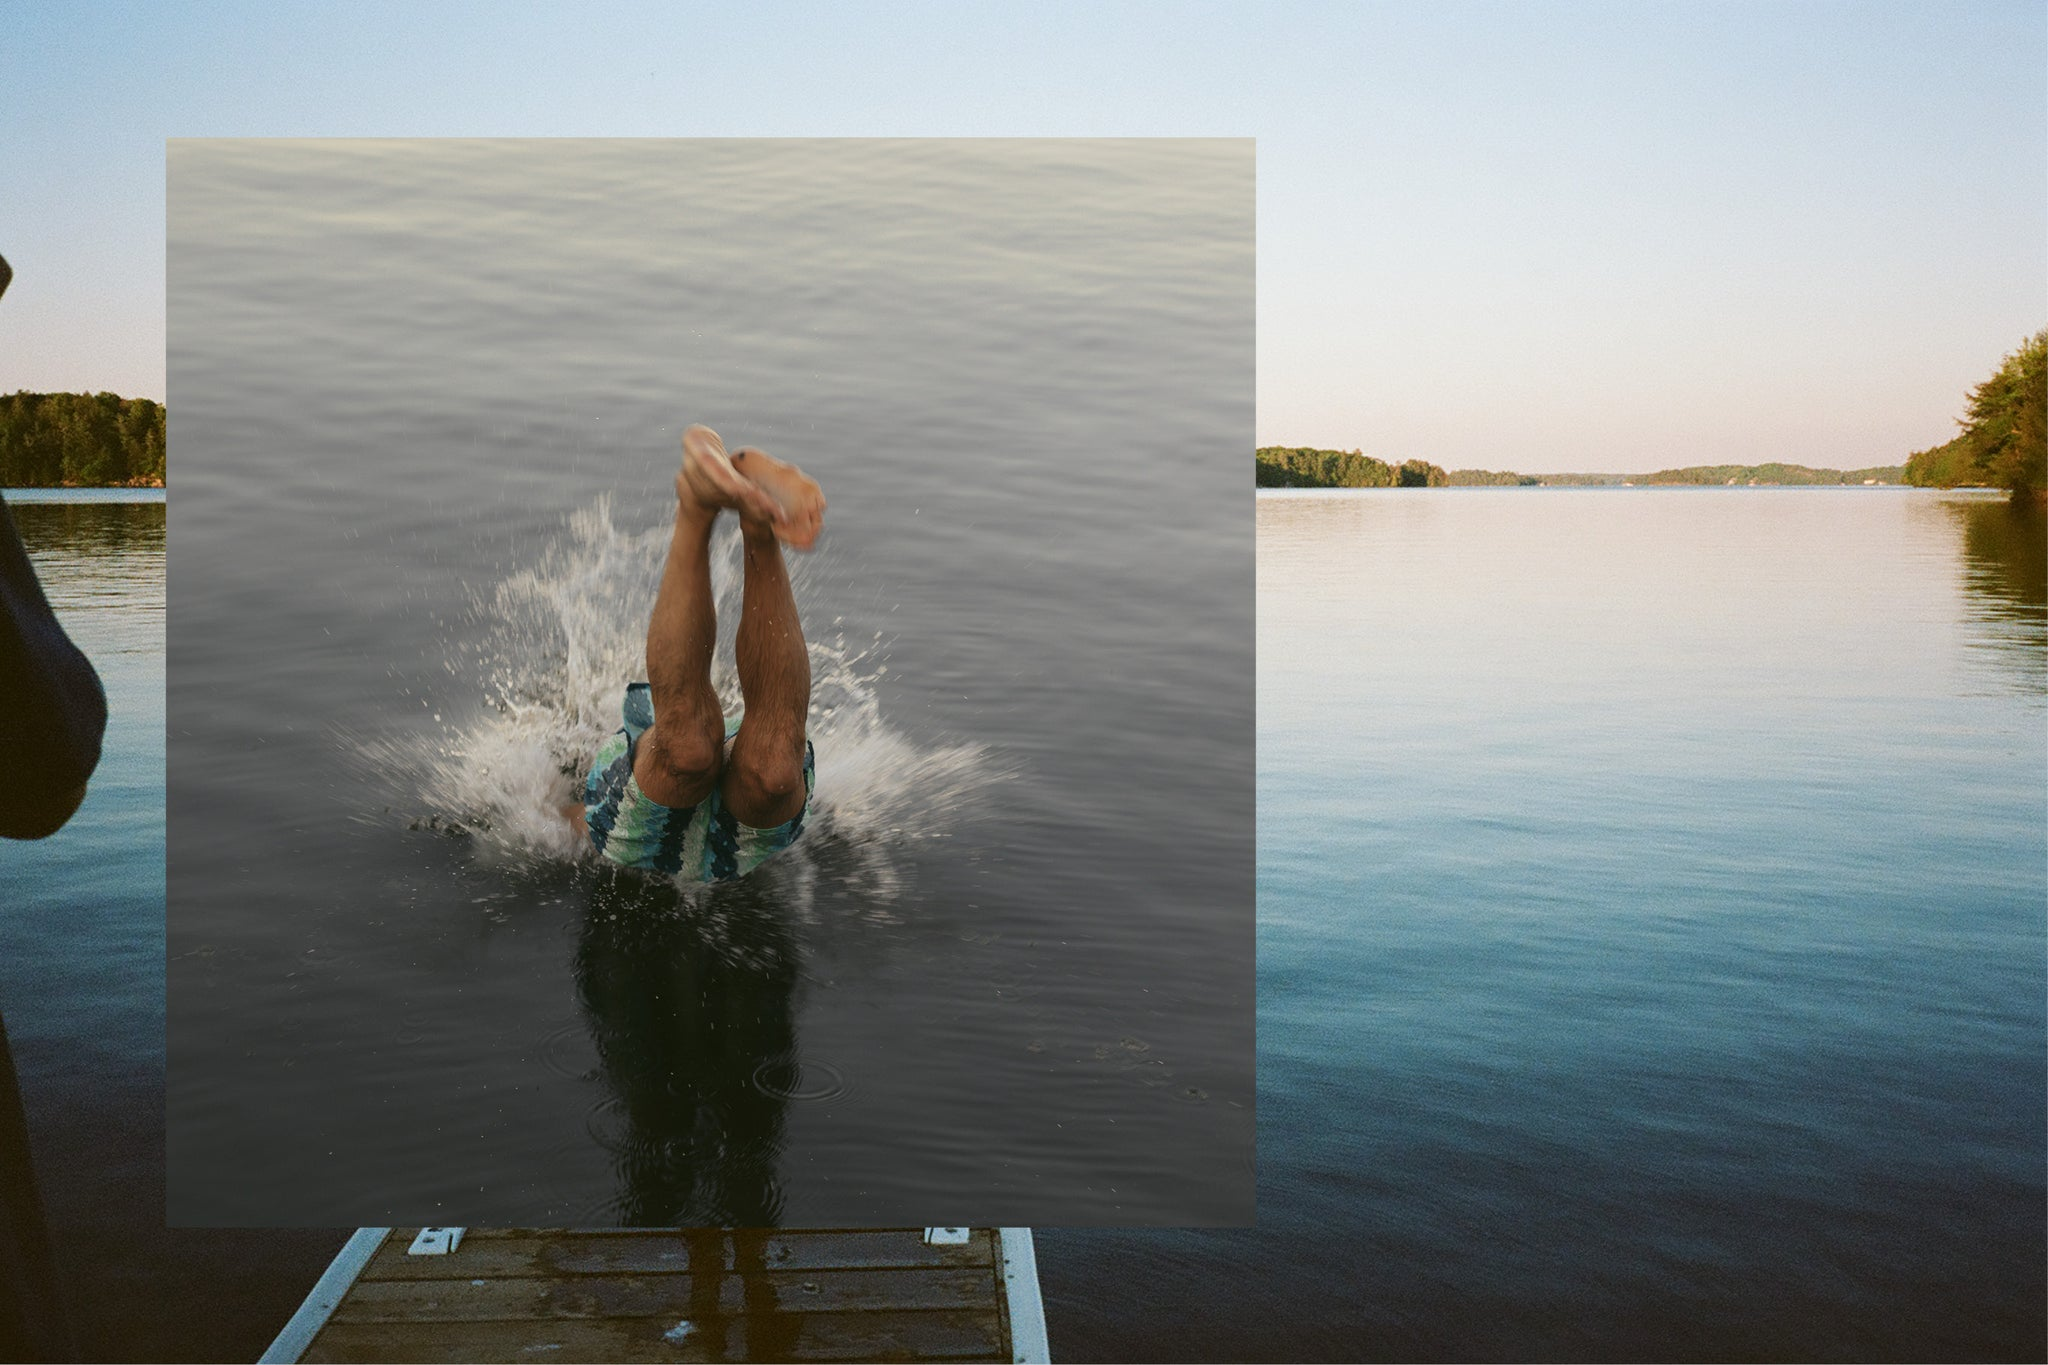 Man diving off a dock into a lake while the sun sets